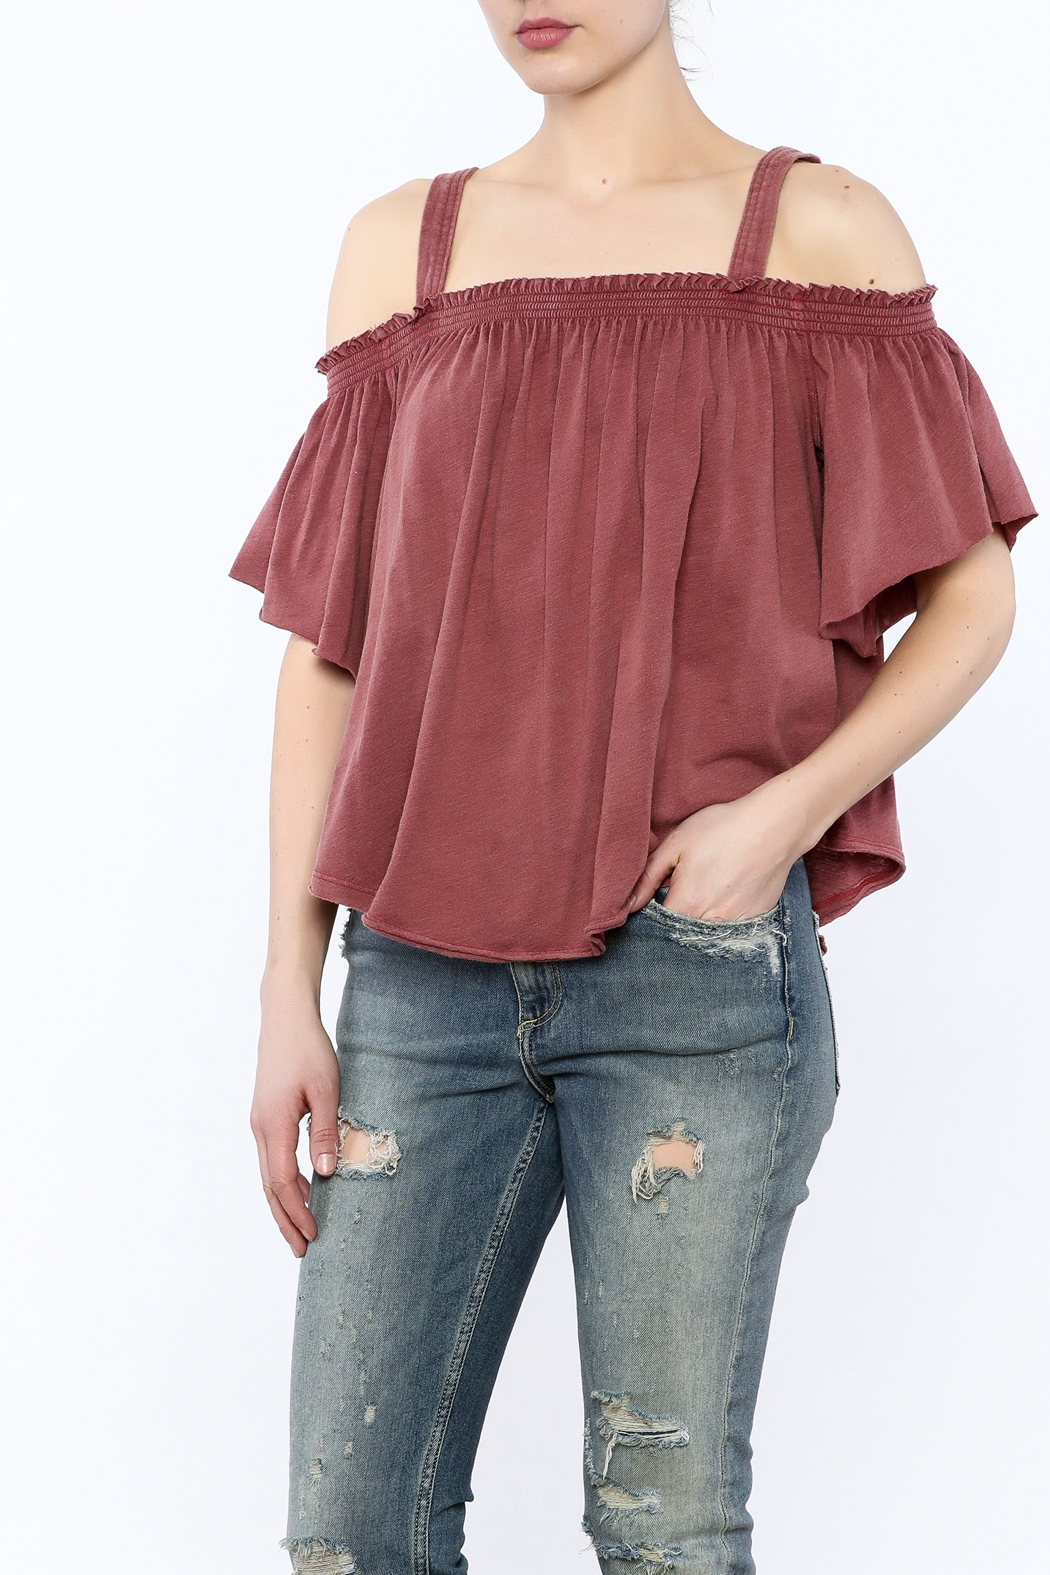 Free People Washed Maroon Top - Main Image